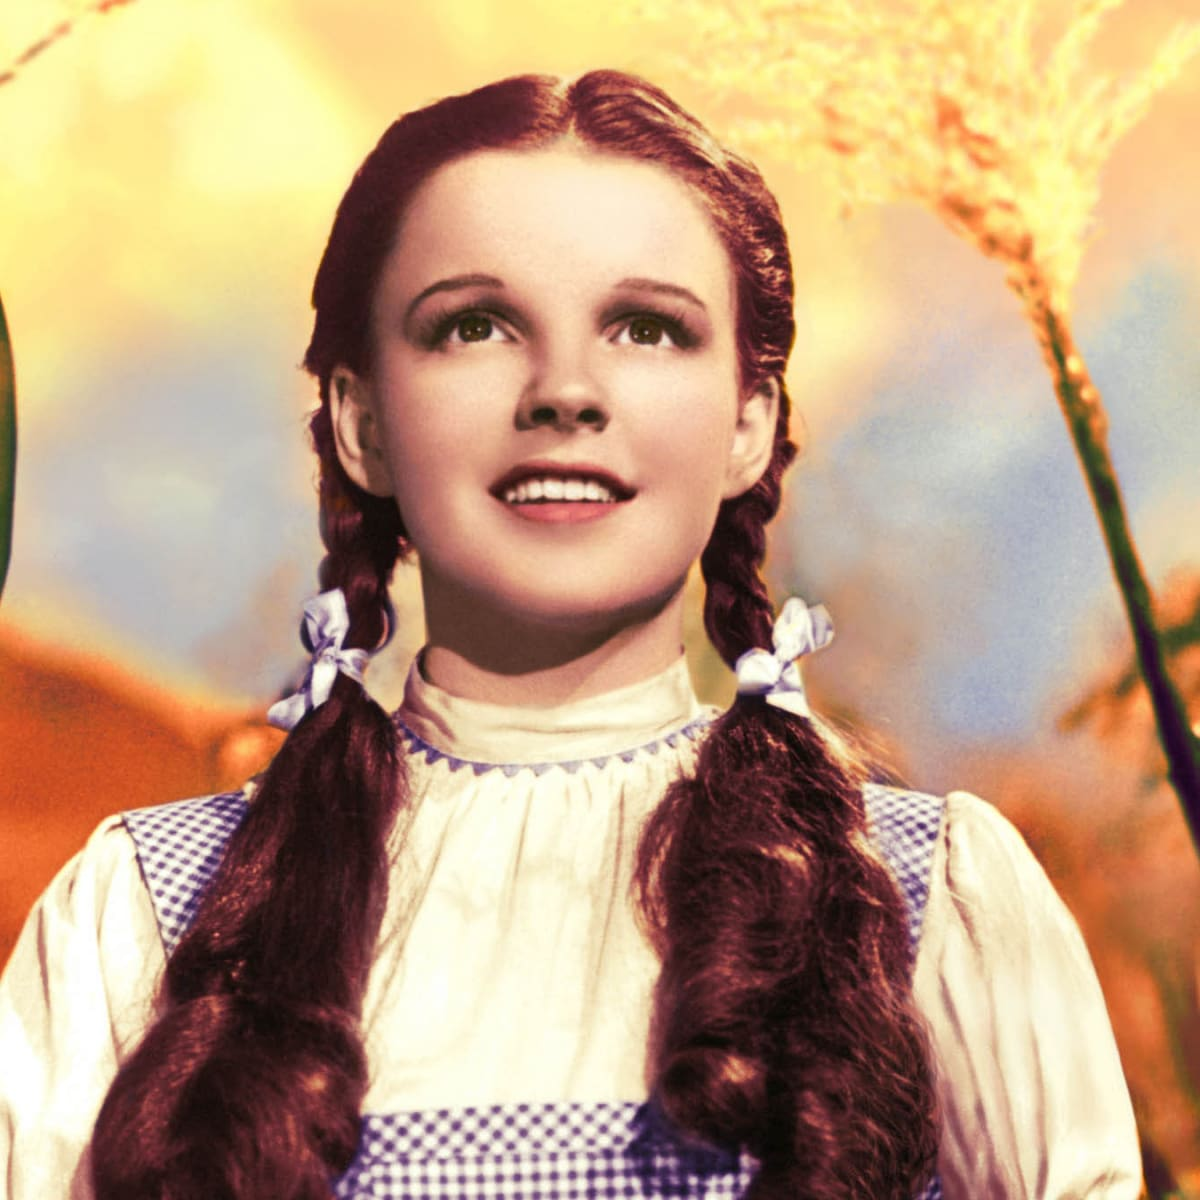 Judy S Garland S Stiff Competition For The Role Of Dorothy In The Wizard Of Oz Biography